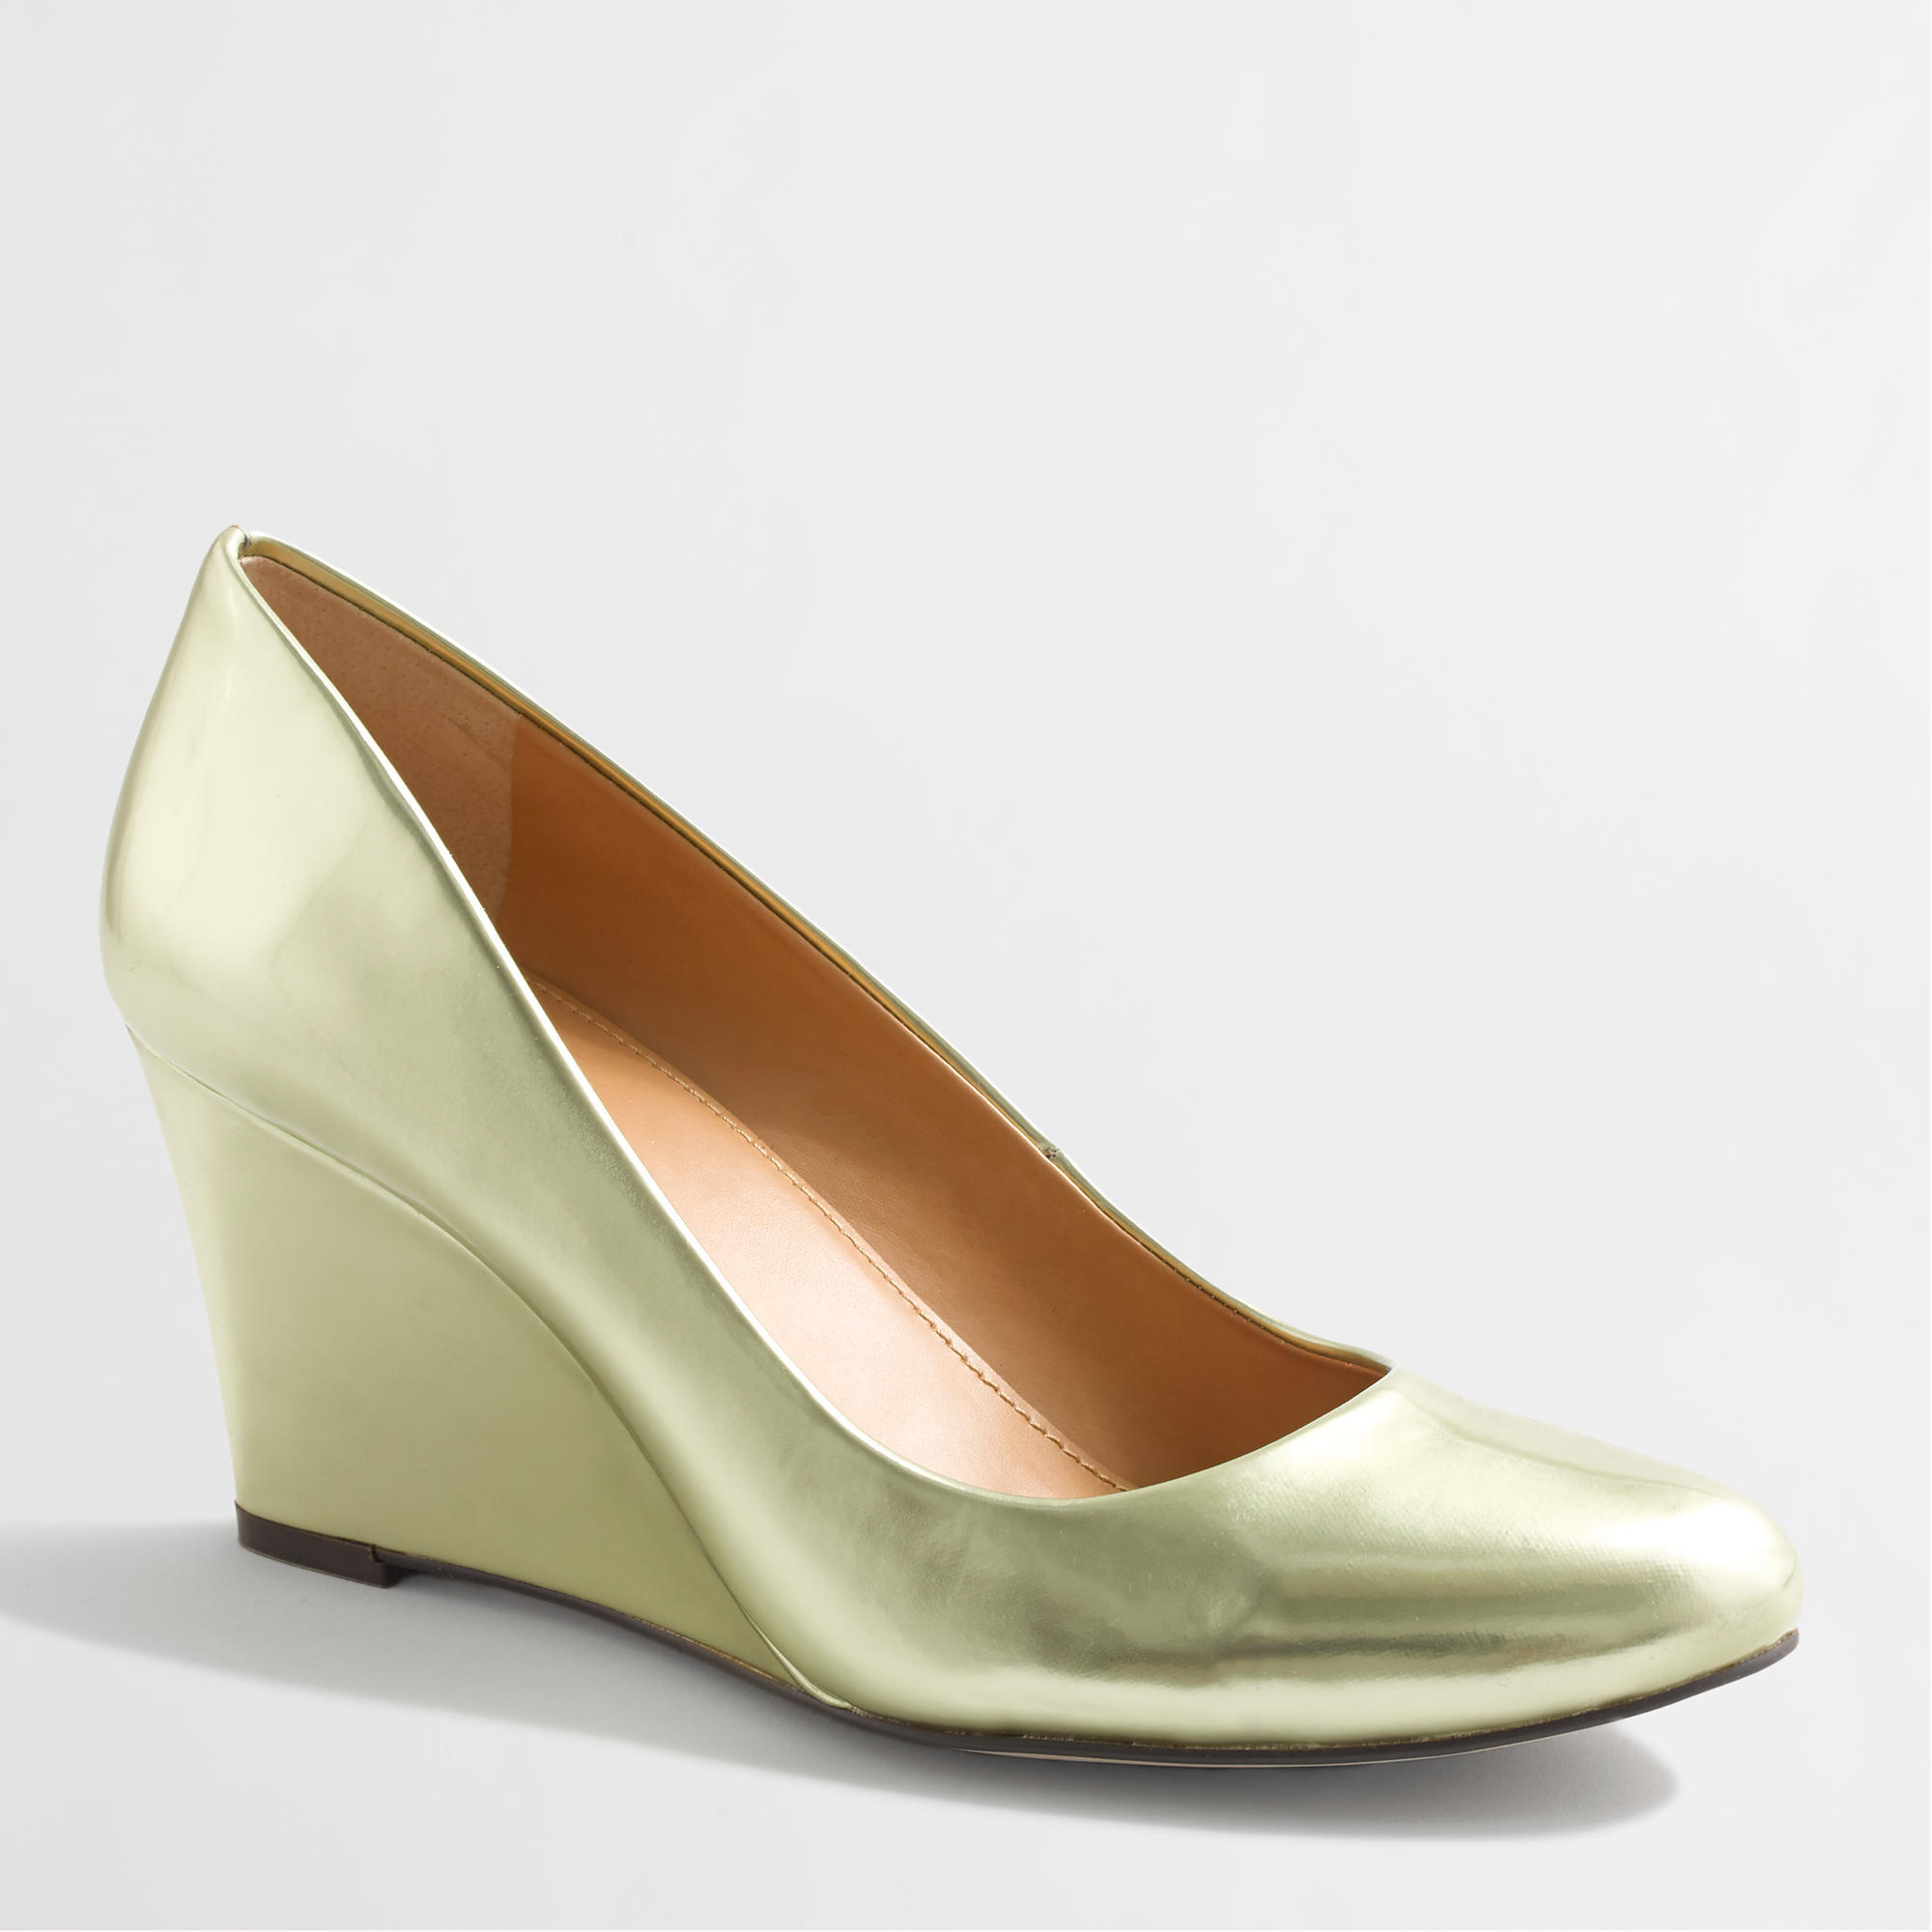 J.Crew Factory Women's Metallic Wedges